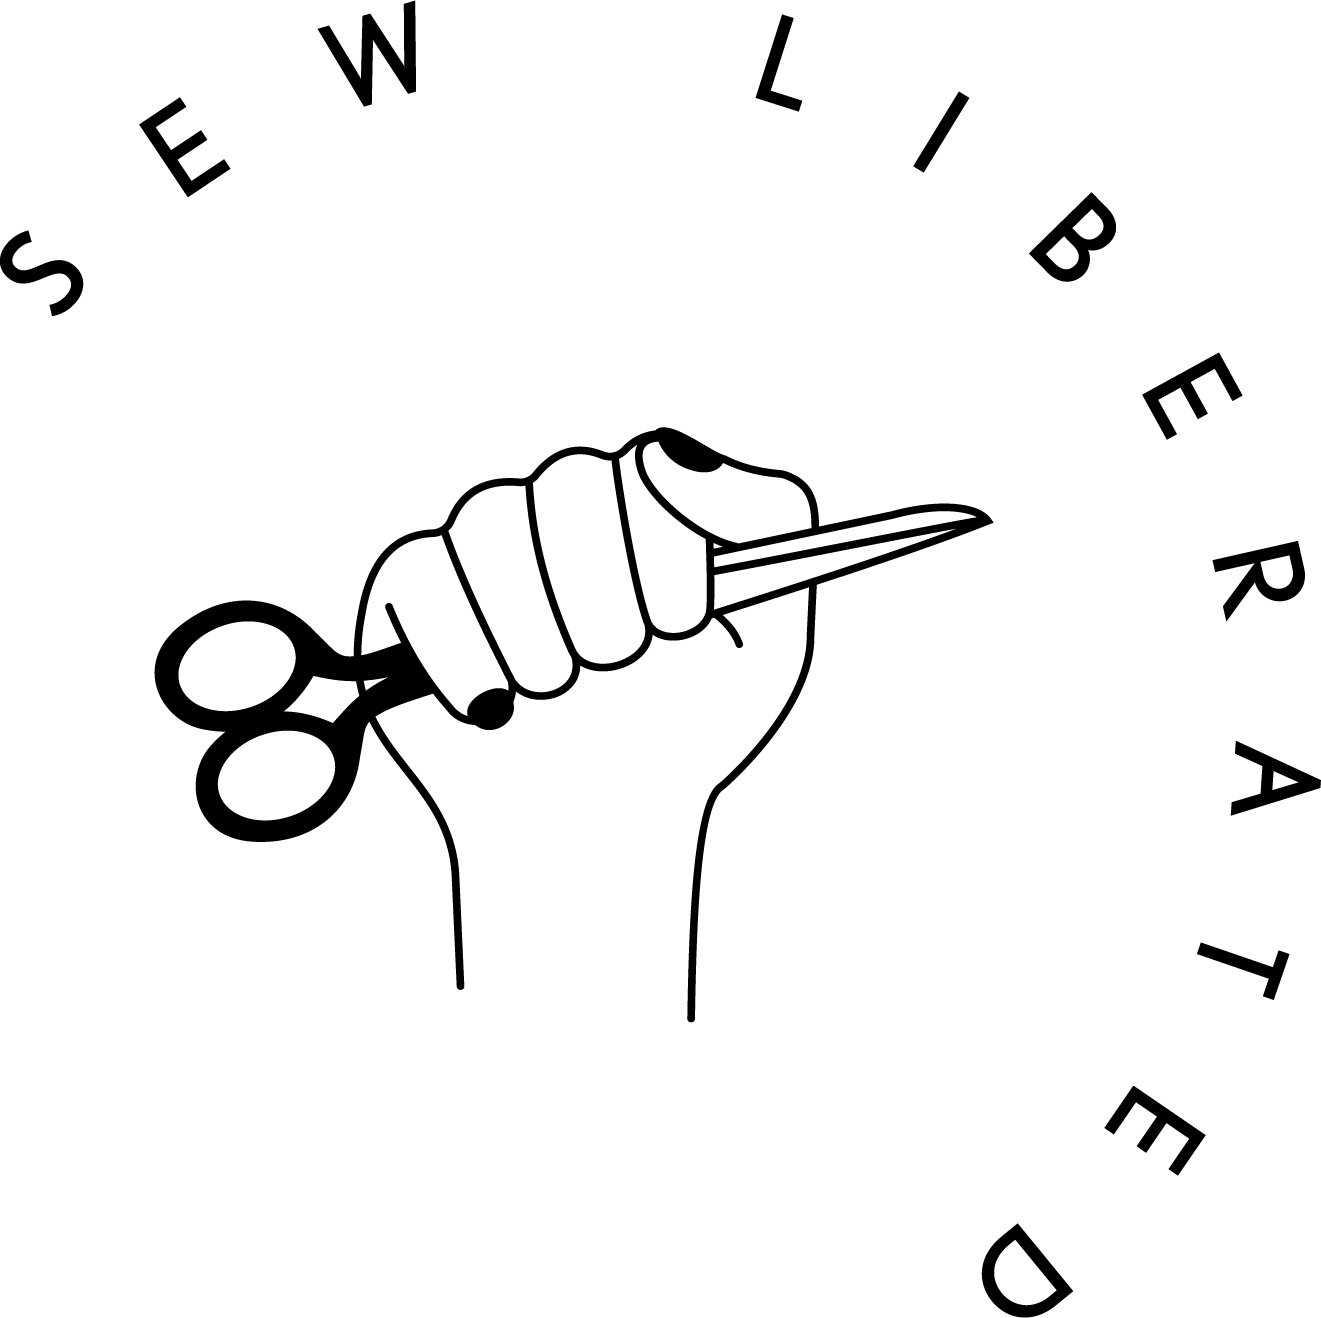 New logo design for Sew Liberated featuring a logo mark illustration by Angie Coates | www.alicia-carvalho.com